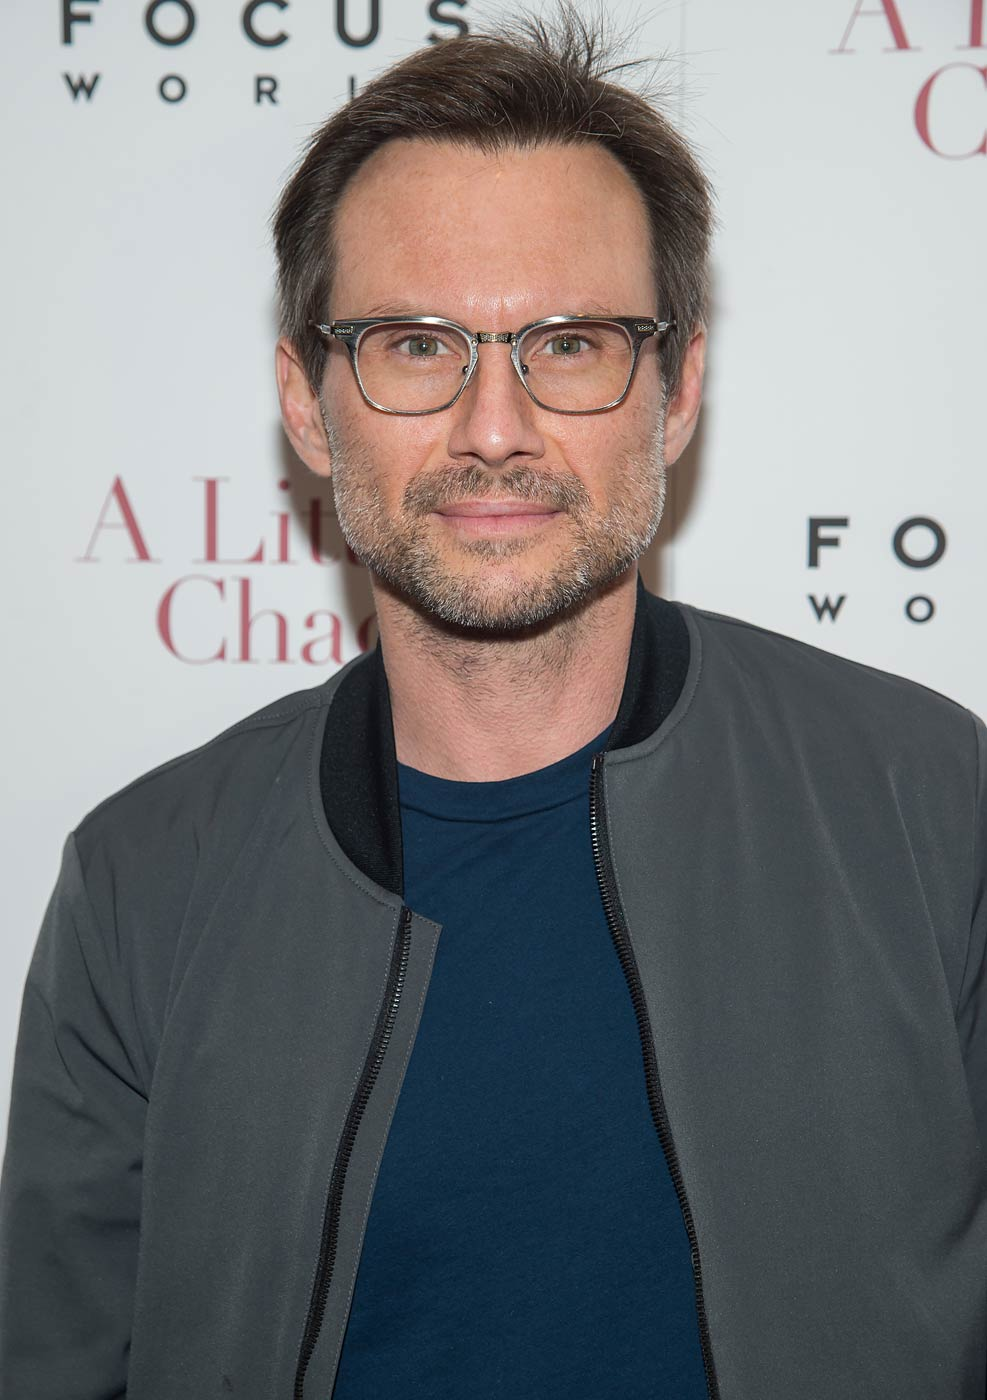 Christian Slater attends A Little Chaos New York Premiere at the Museum of Modern Art on June 17, 2015 in New York City.